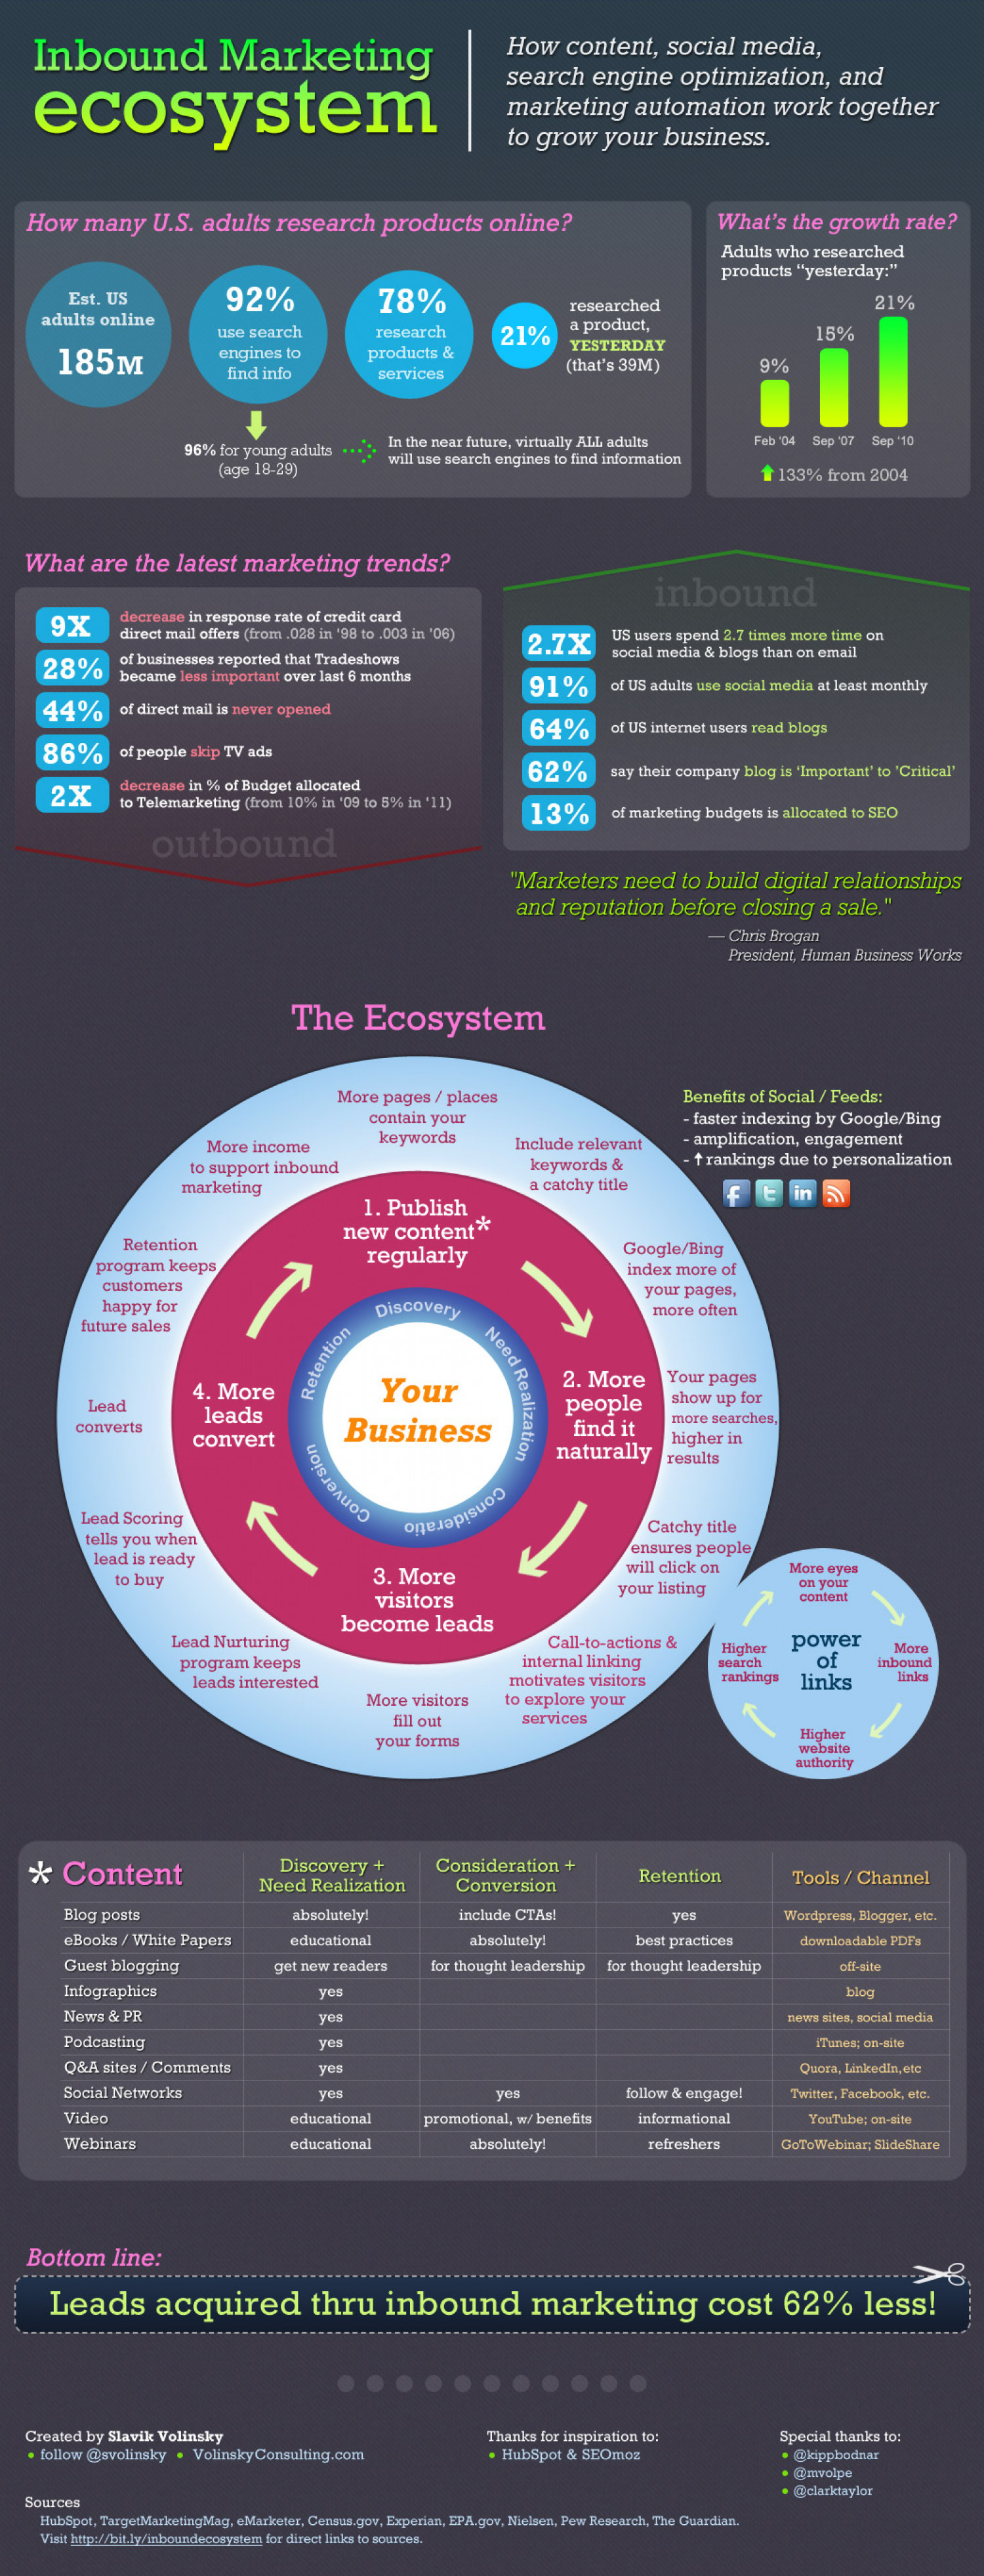 Inbound Marketing Ecosystem Infographic